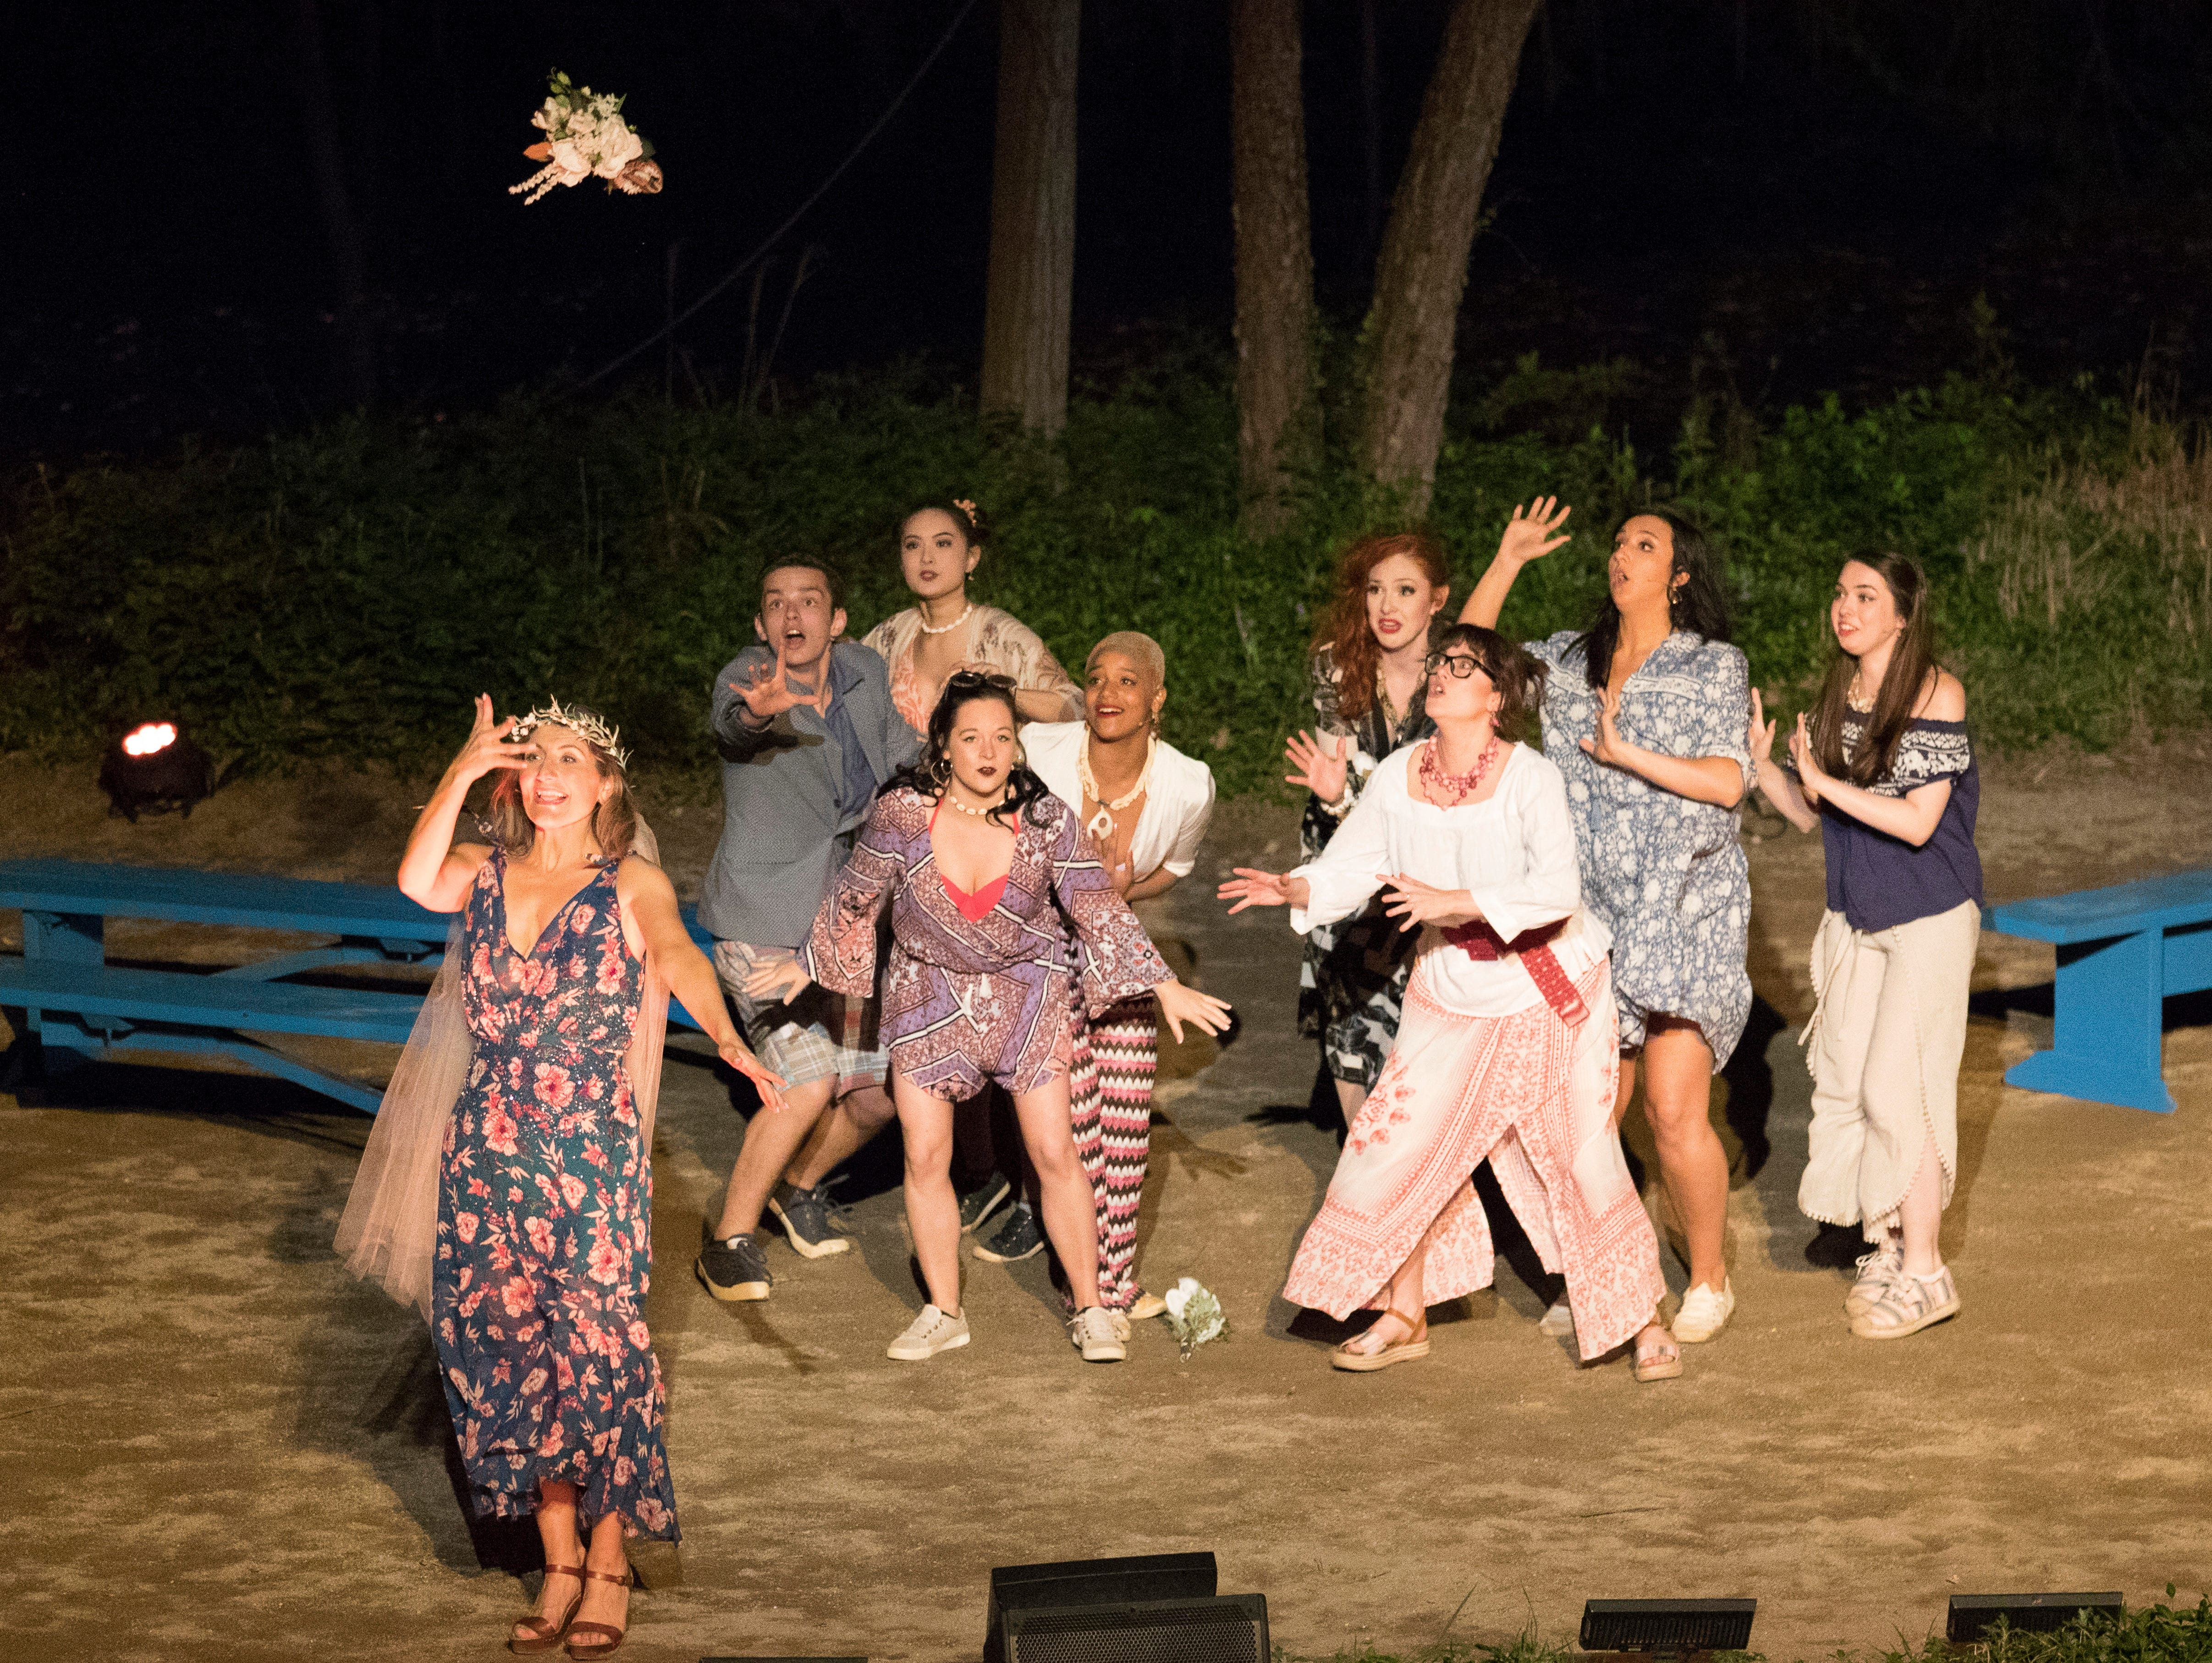 """Producer Brian Clowdus brings the hit musical """"Mamma Mia!,"""" based on the popular songs sung by Swedish pop group ABBA, to the Sugarloaf Mountain Amphitheatre through May 12. The musical tells the story of a young woman who is about to be married and wants to discover the identity of her father by inviting three men from her mother's past. Itstars Betsy Padamonsky, Lauren Rabe, and Jay Reid along with Chillicothe locals Joey Manna, Jaxon Newsome, and Josh Houston. For more for more information and tickets, visit tecumsehdrama.com."""